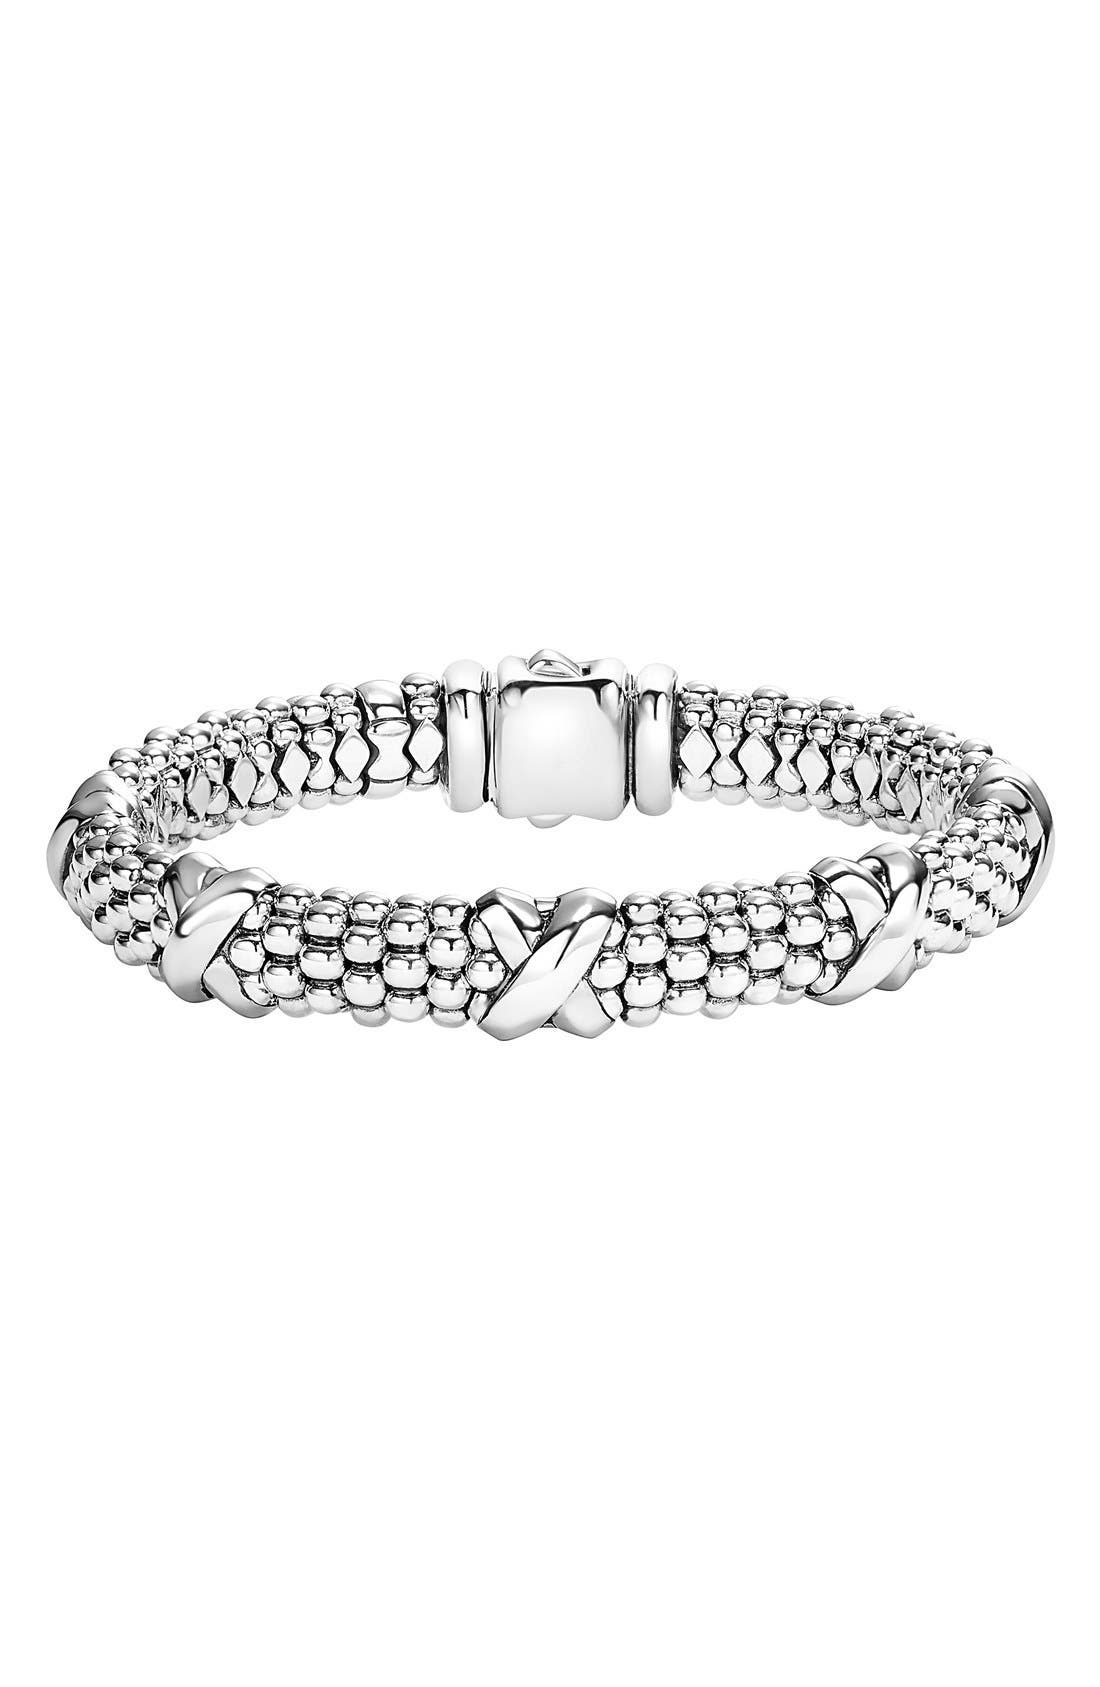 'Signature Caviar' Oval Rope Bracelet,                             Main thumbnail 1, color,                             STERLING SILVER